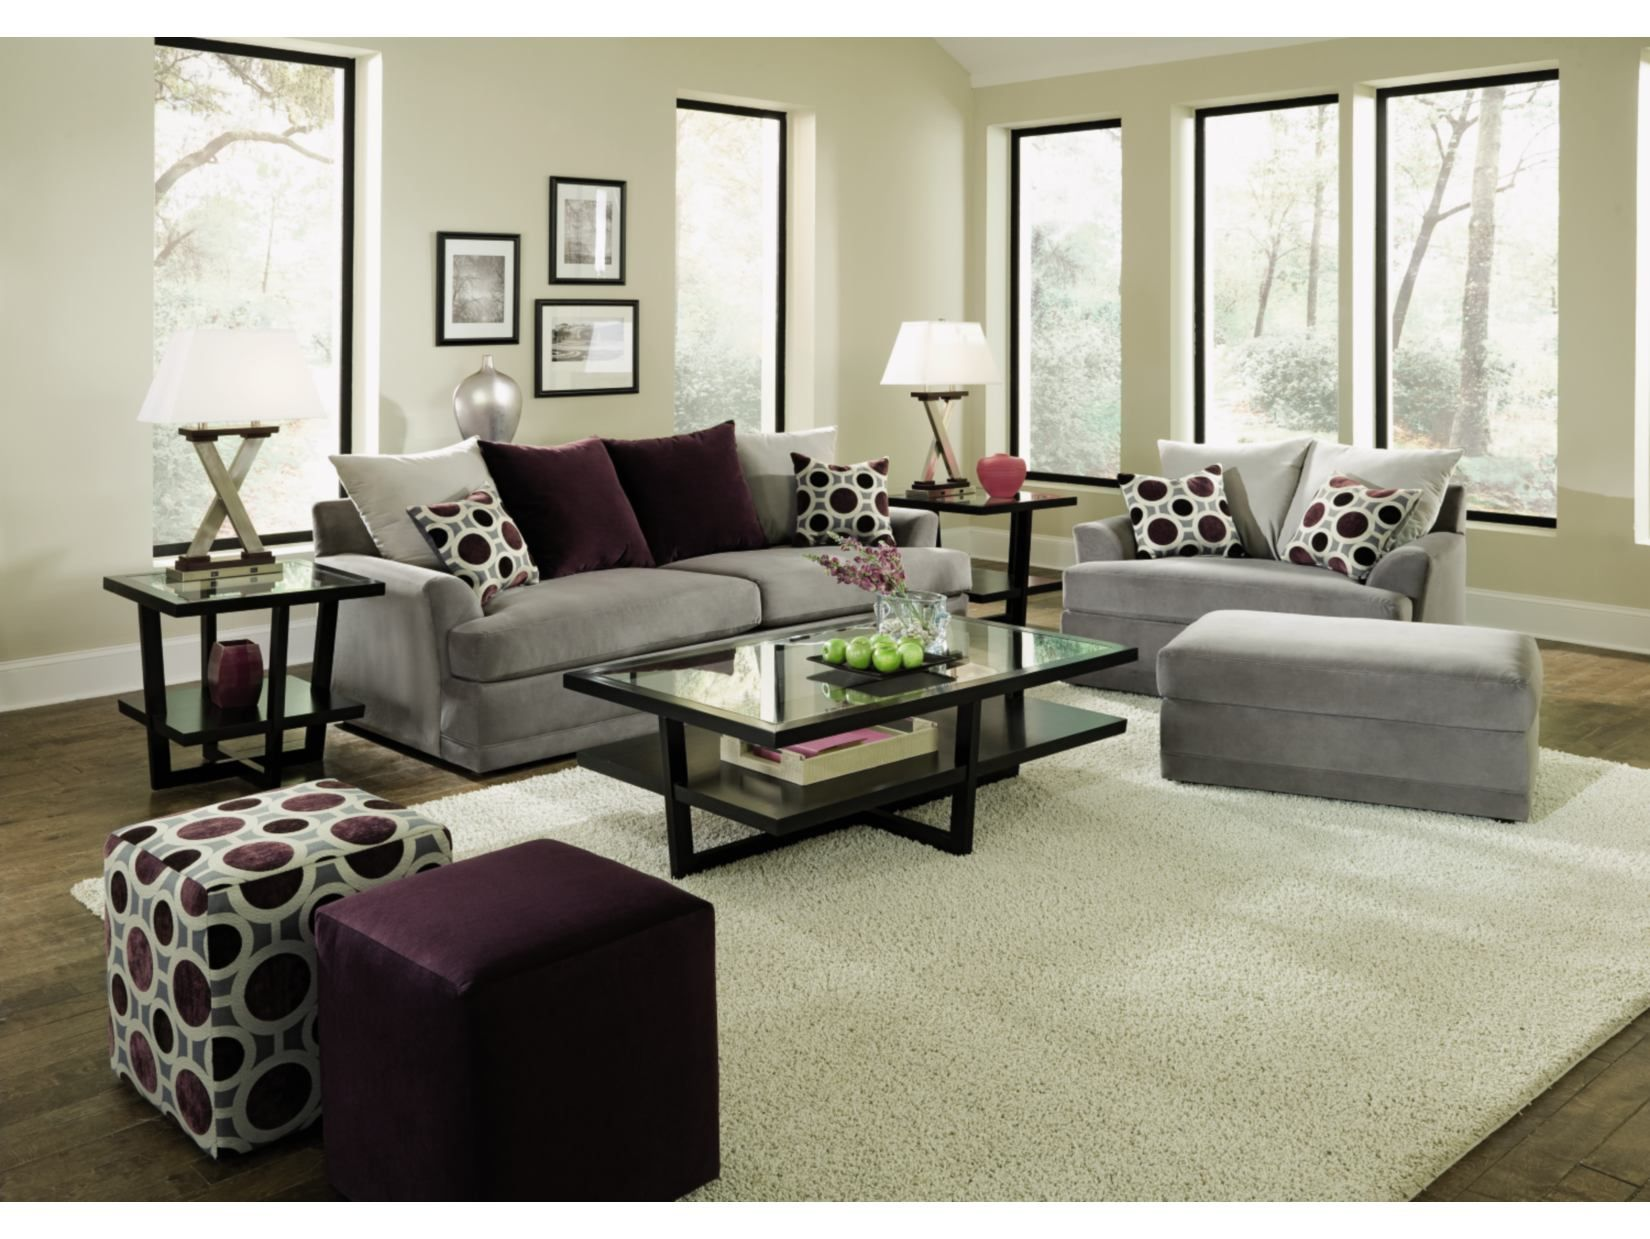 Radiance Pewter Sofa - Value City Furniture Grey sofa and love ...